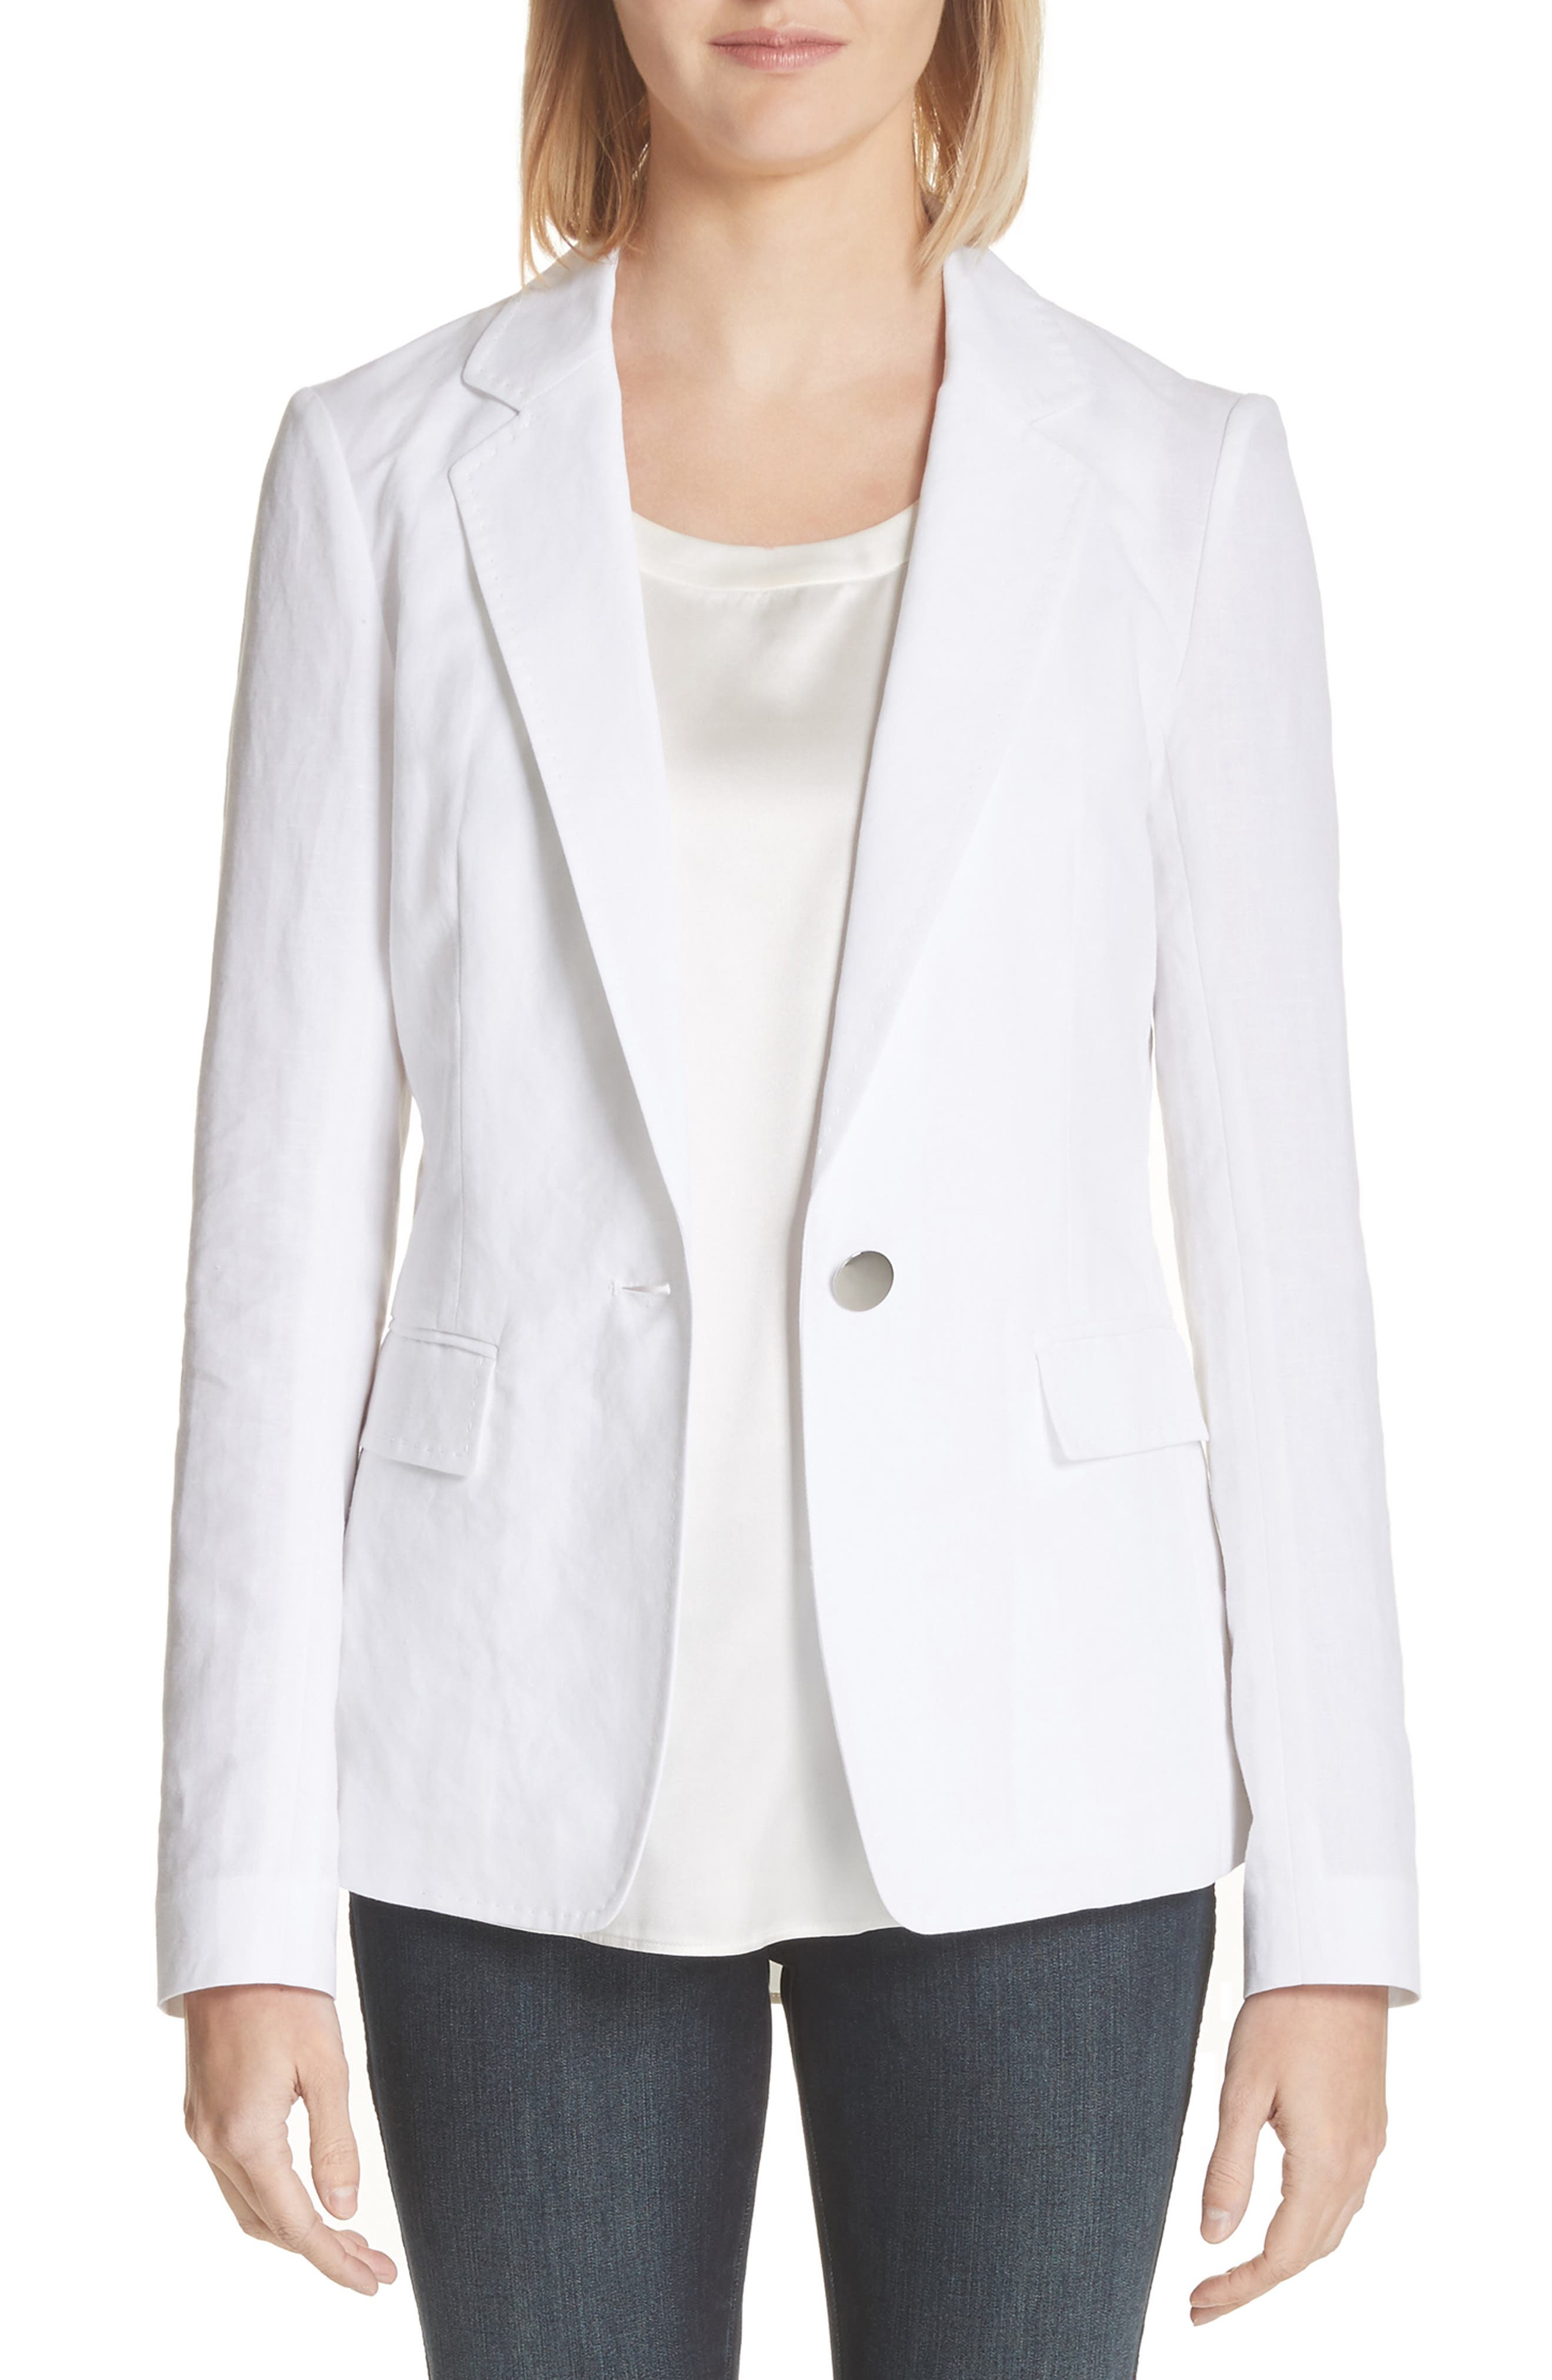 Lyndon Courtly Cotton & Linen Jacket,                         Main,                         color, White